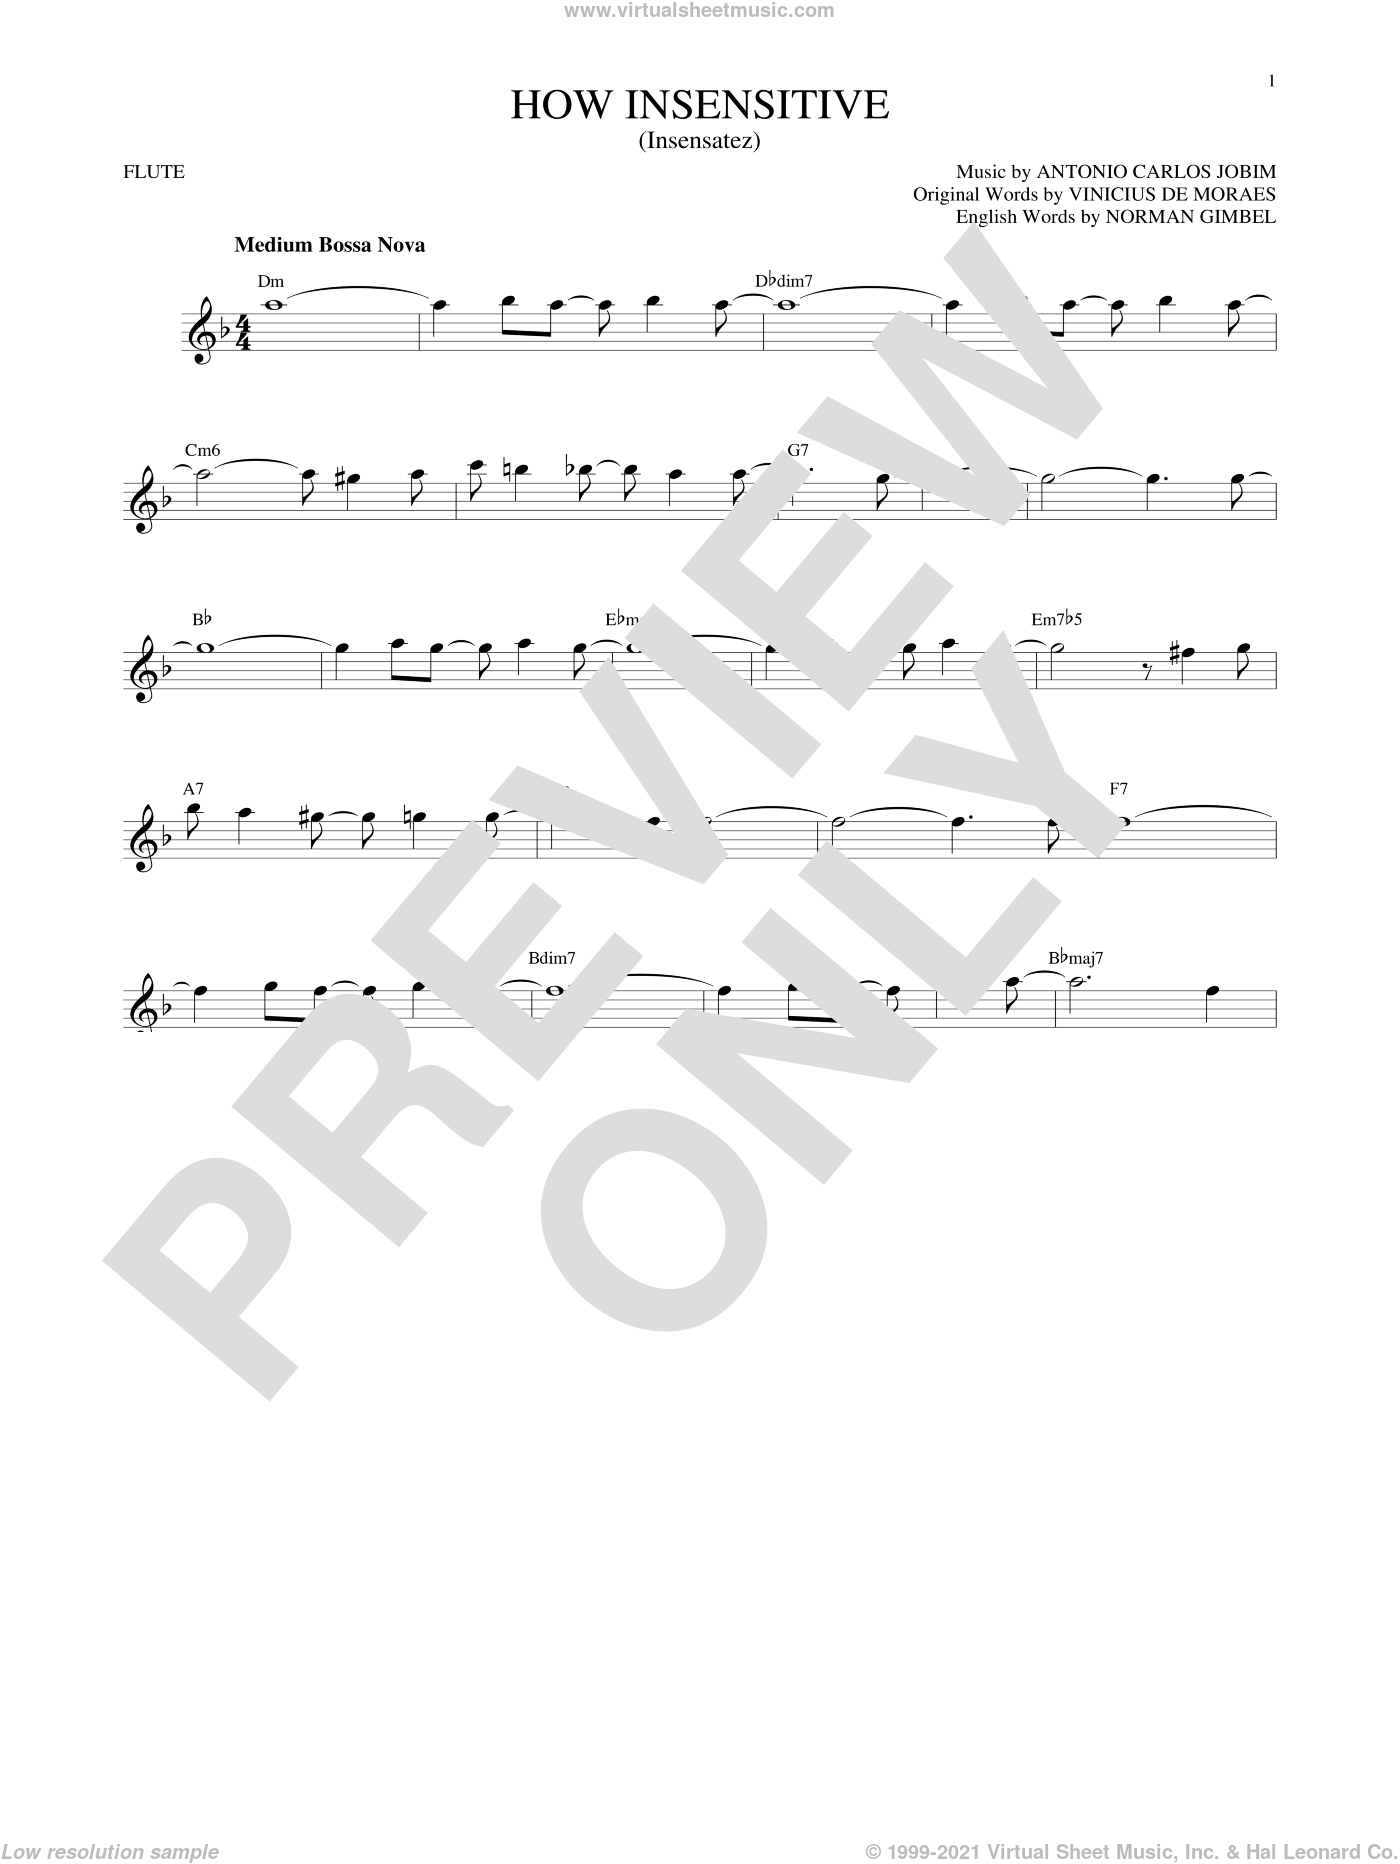 How Insensitive (Insensatez) sheet music for flute solo by Vinicius de Moraes, Antonio Carlos Jobim and Norman Gimbel. Score Image Preview.